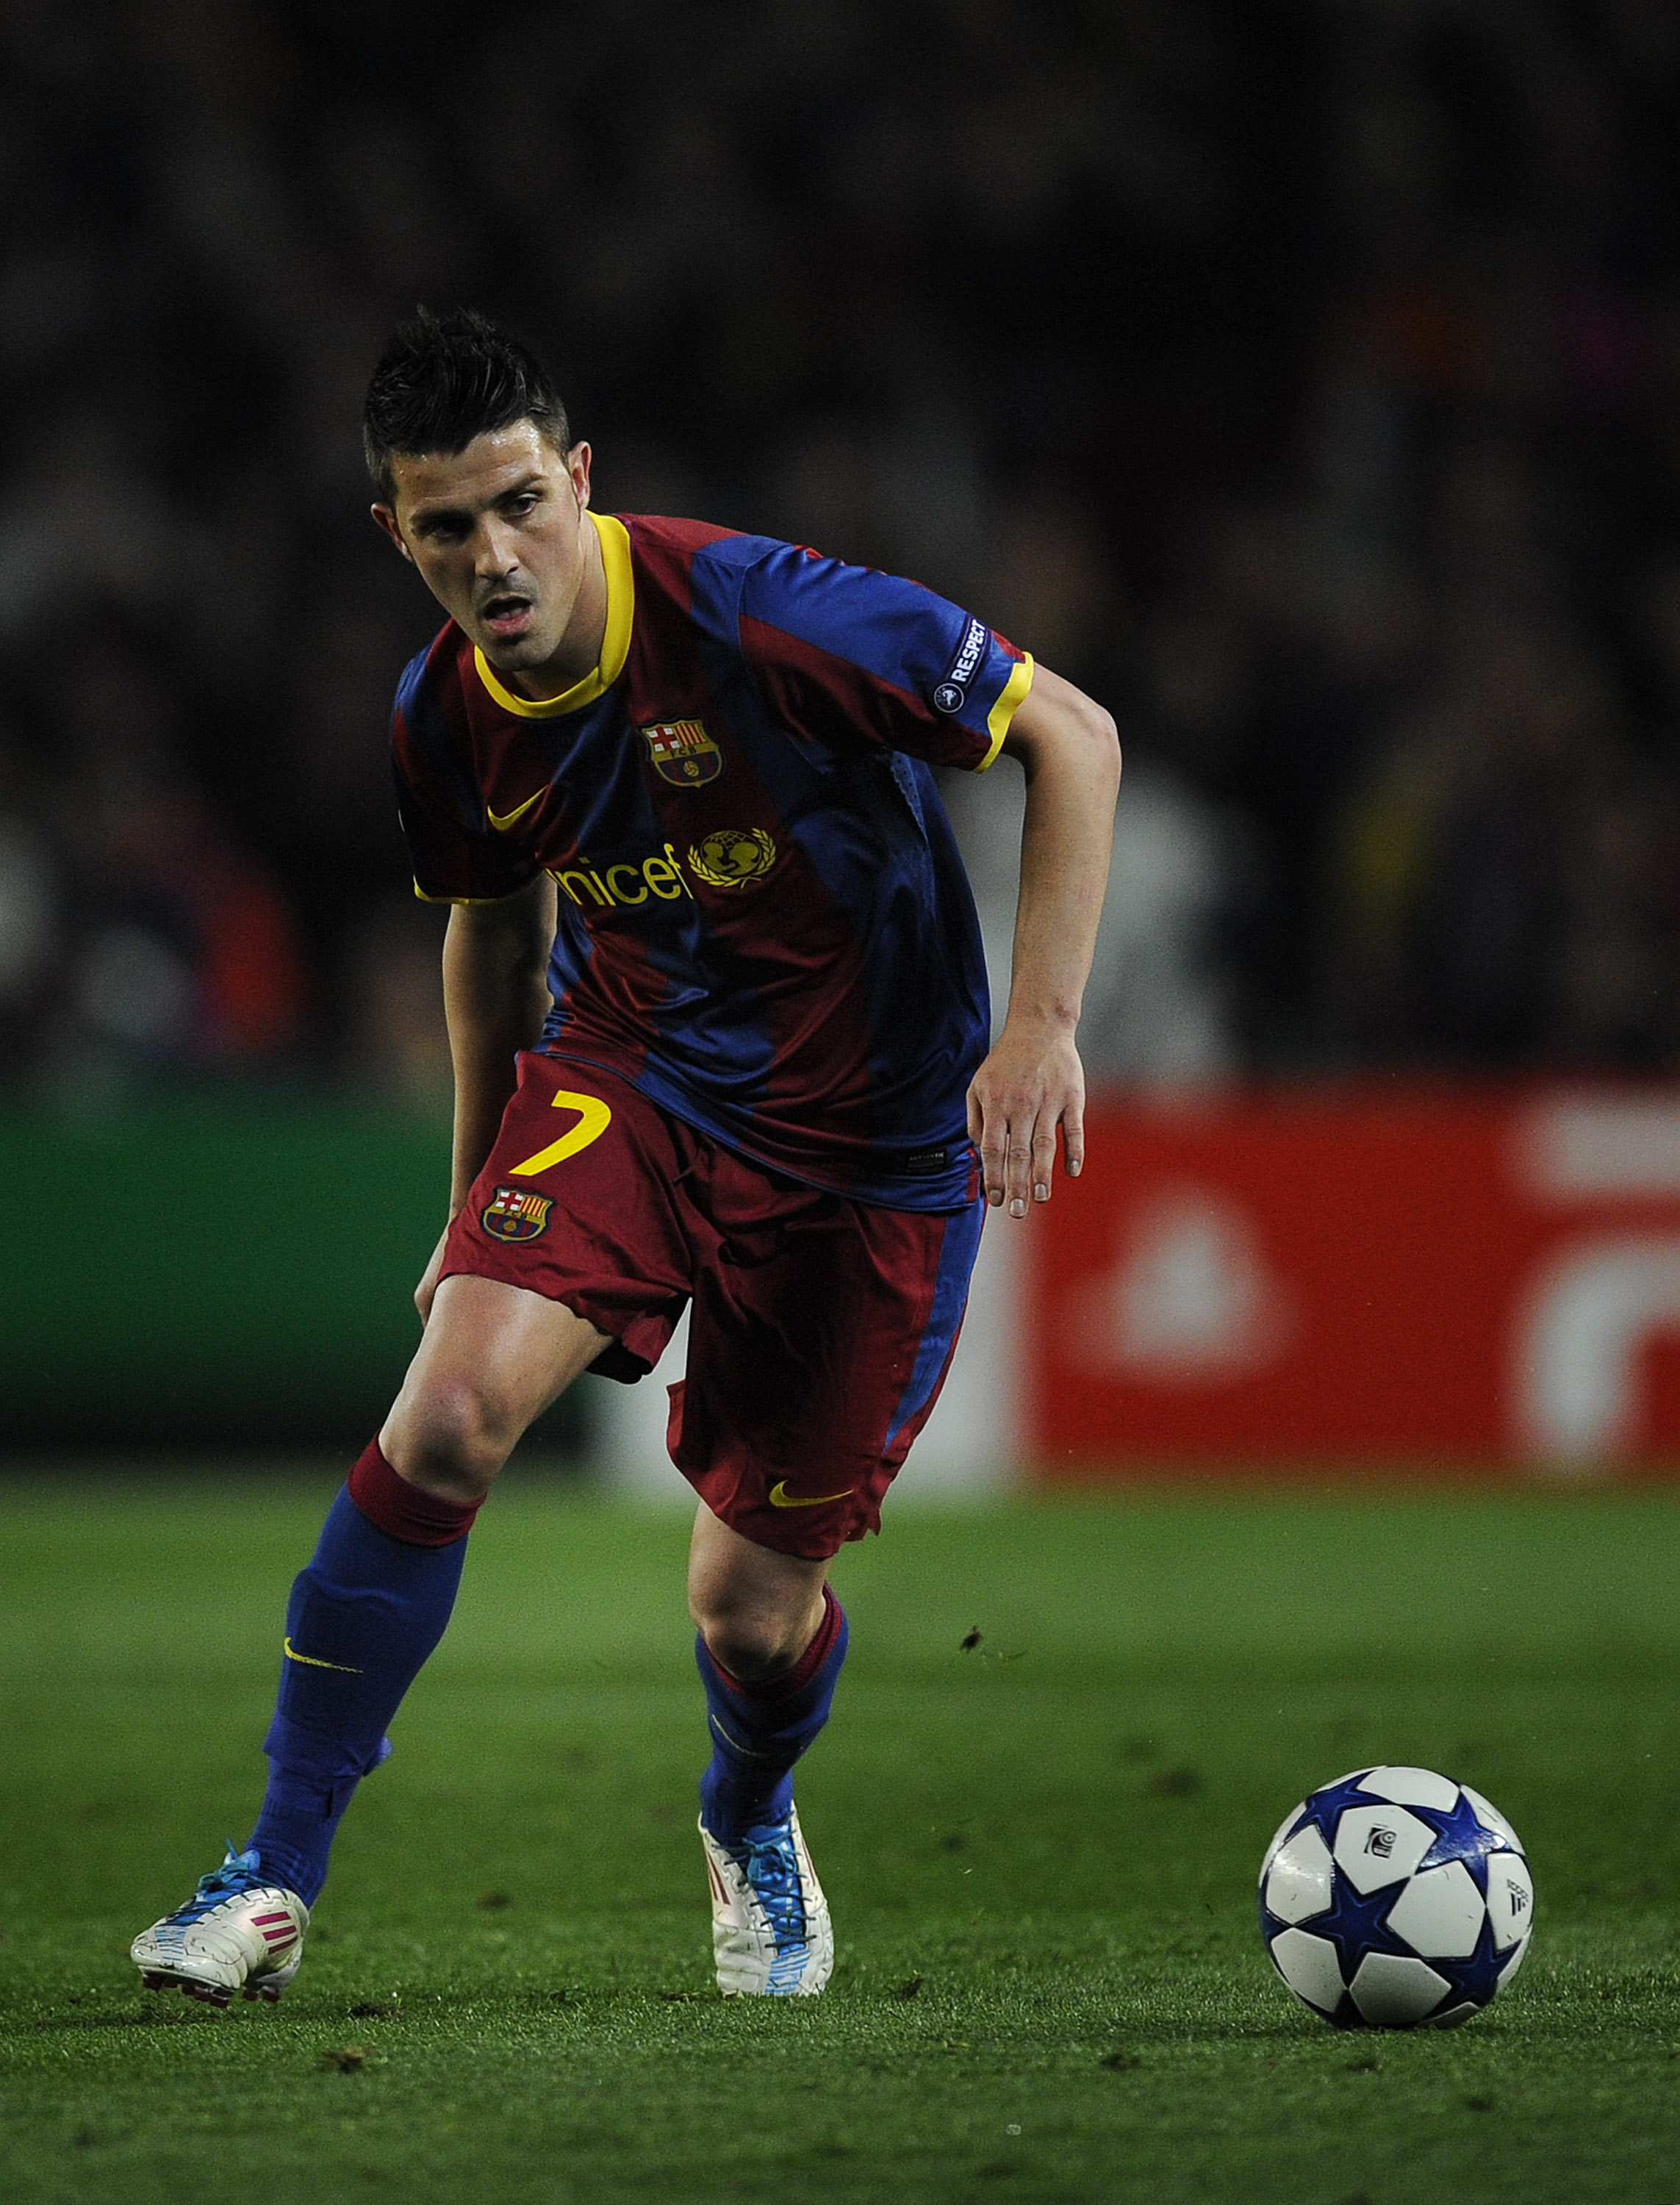 BARCELONA, SPAIN - MARCH 08:  David Villa of FC Barcelona runs with the ball during the UEFA Champions League round of 16 second leg match between Barcelona and Arsenal at the Camp Nou stadium on March 8, 2011 in Barcelona, Spain.  Barcelona won 3-1.  (Ph